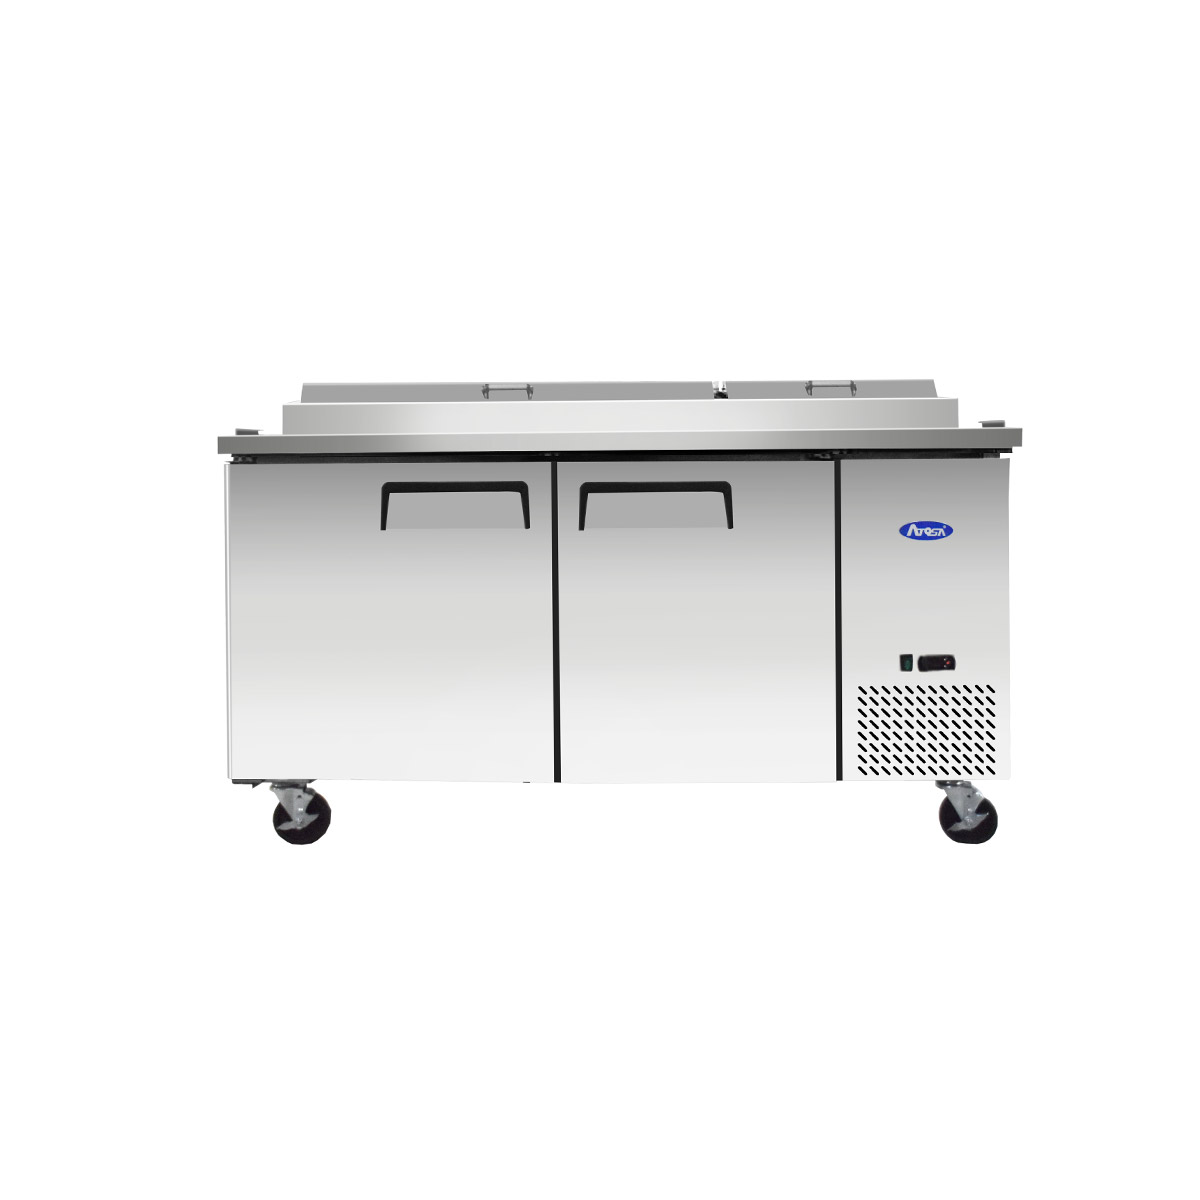 Atosa MPF8202GR 2 Door Refrigeration Preparation Table Including 9x 1/3 GN Pan Option